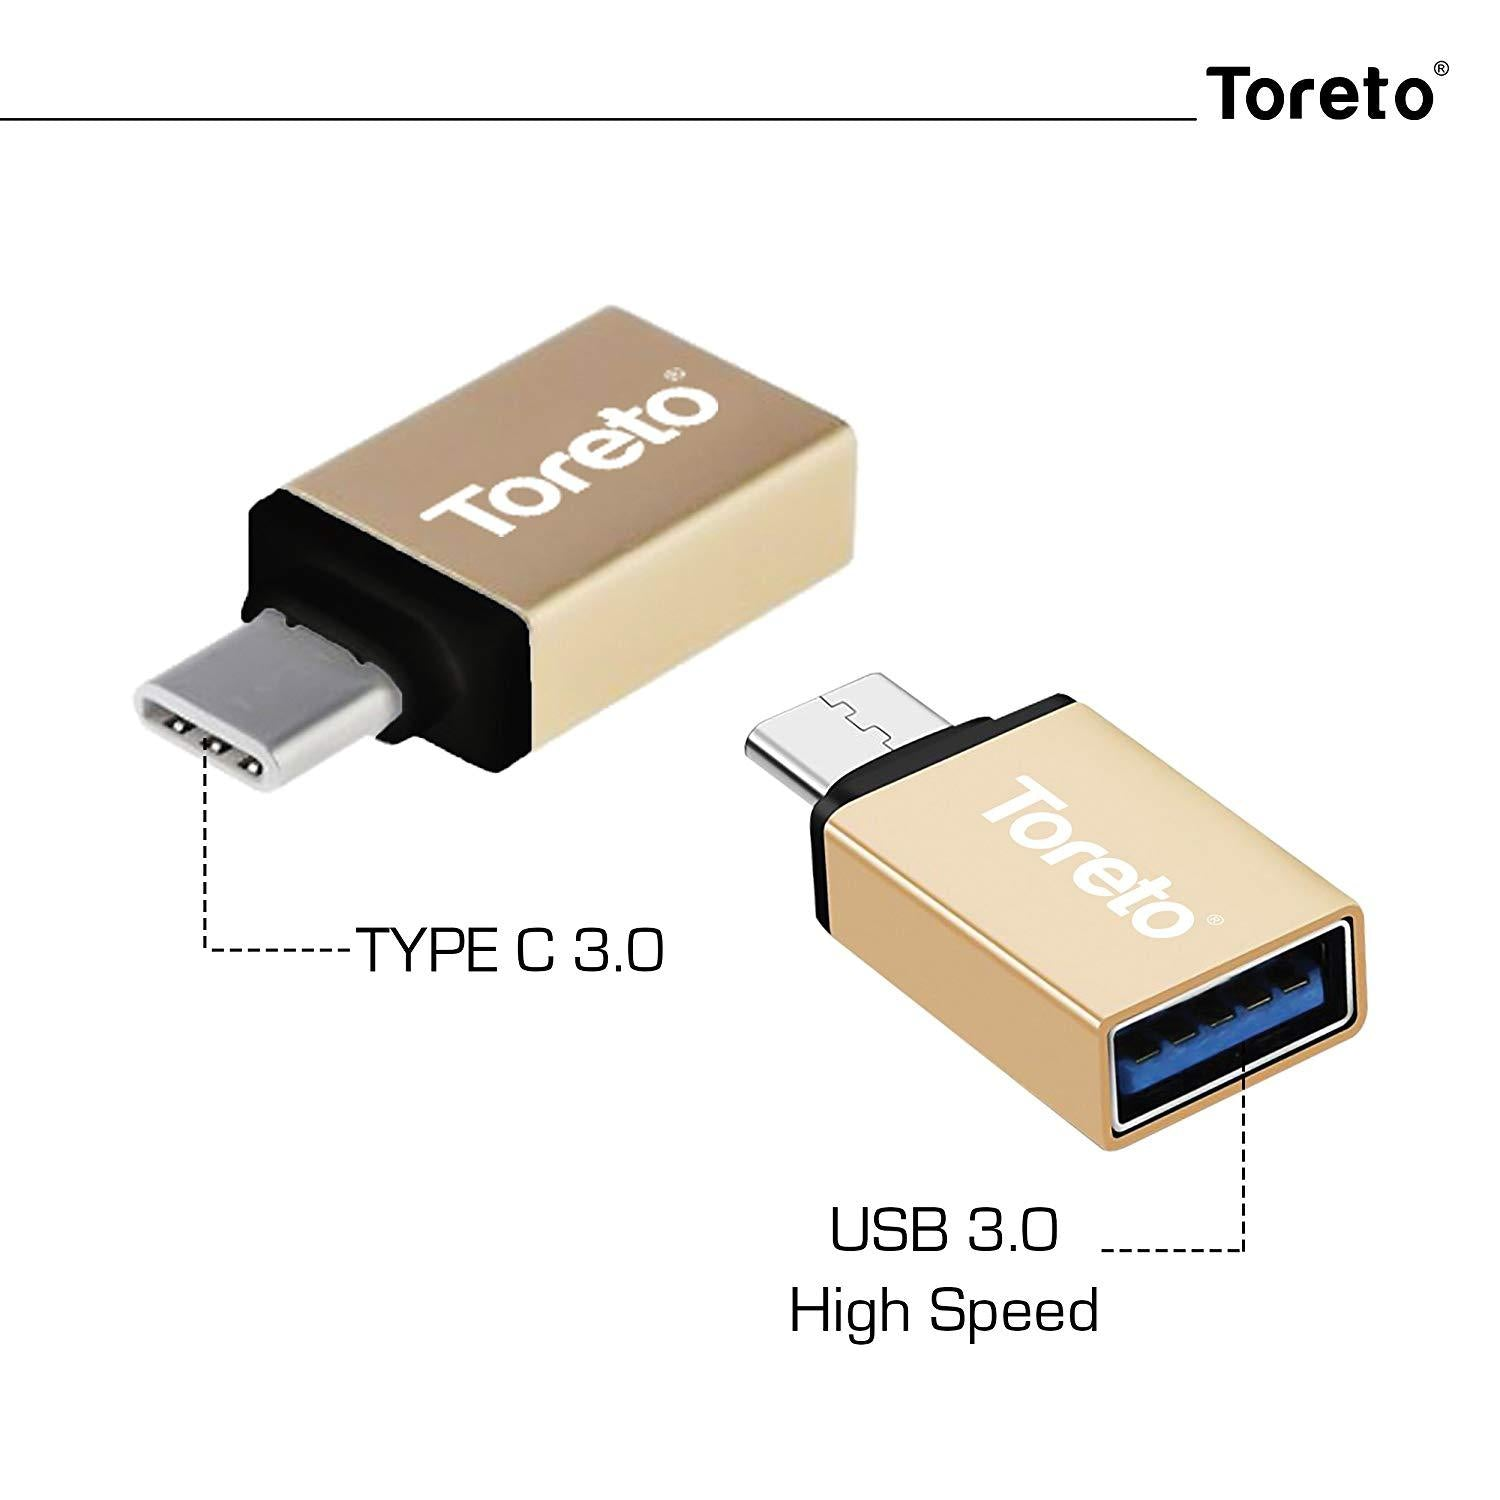 Toreto Fetch Type C 3-0 Otg Card Reader